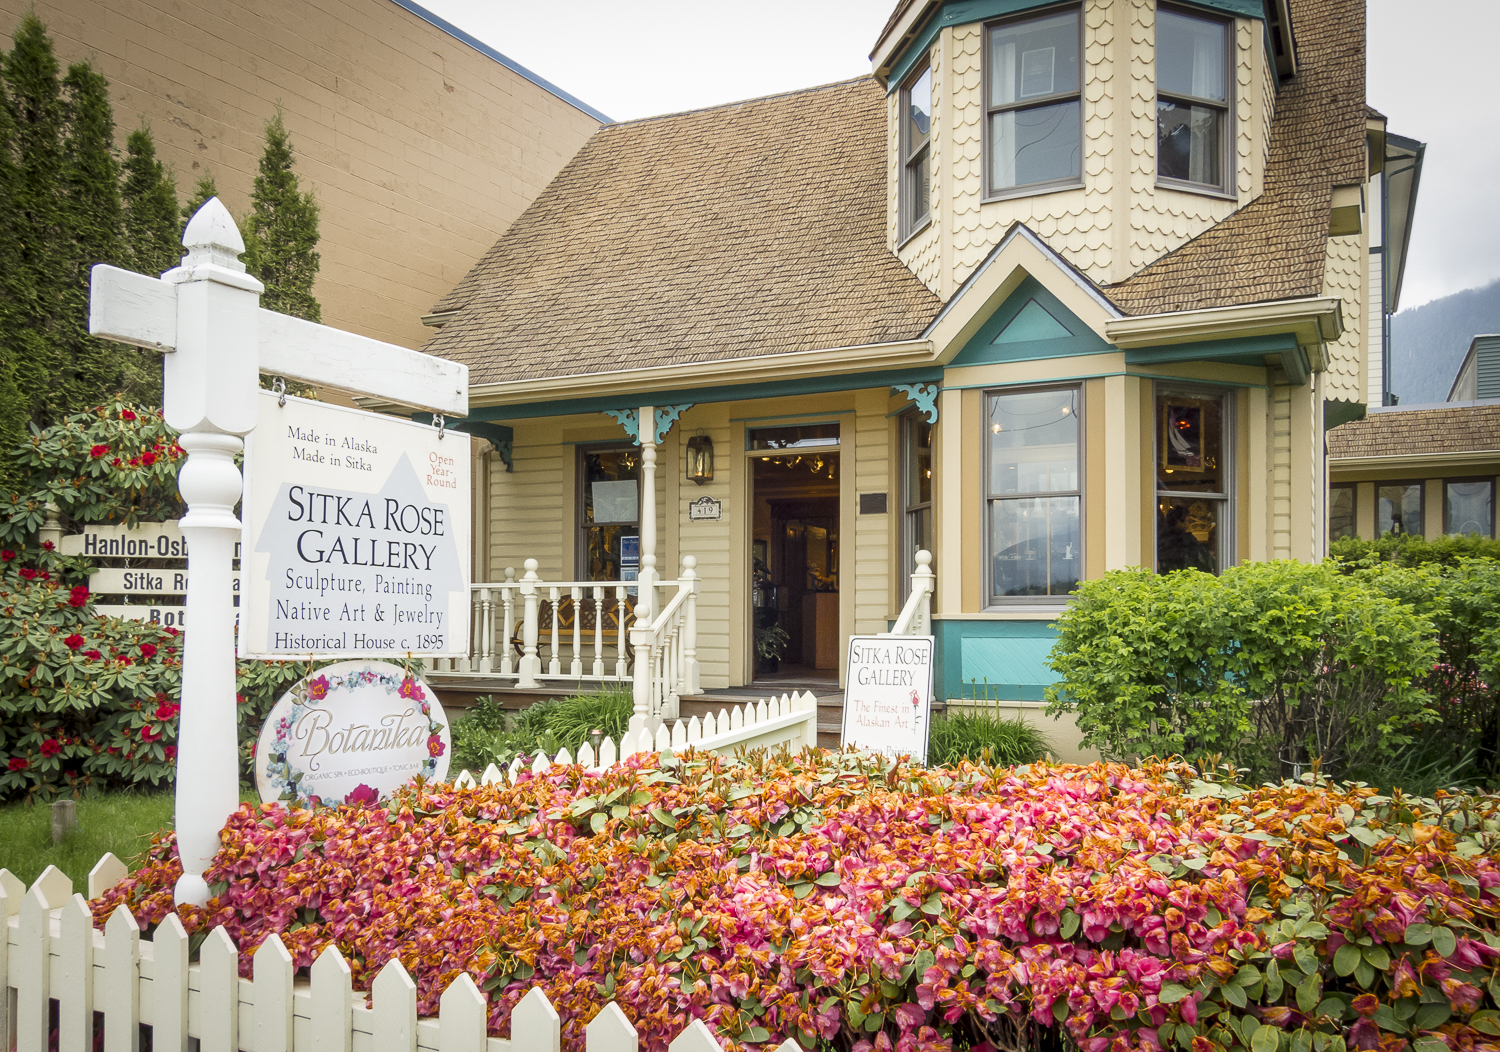 The Sitka Rose Gallery in Stika.